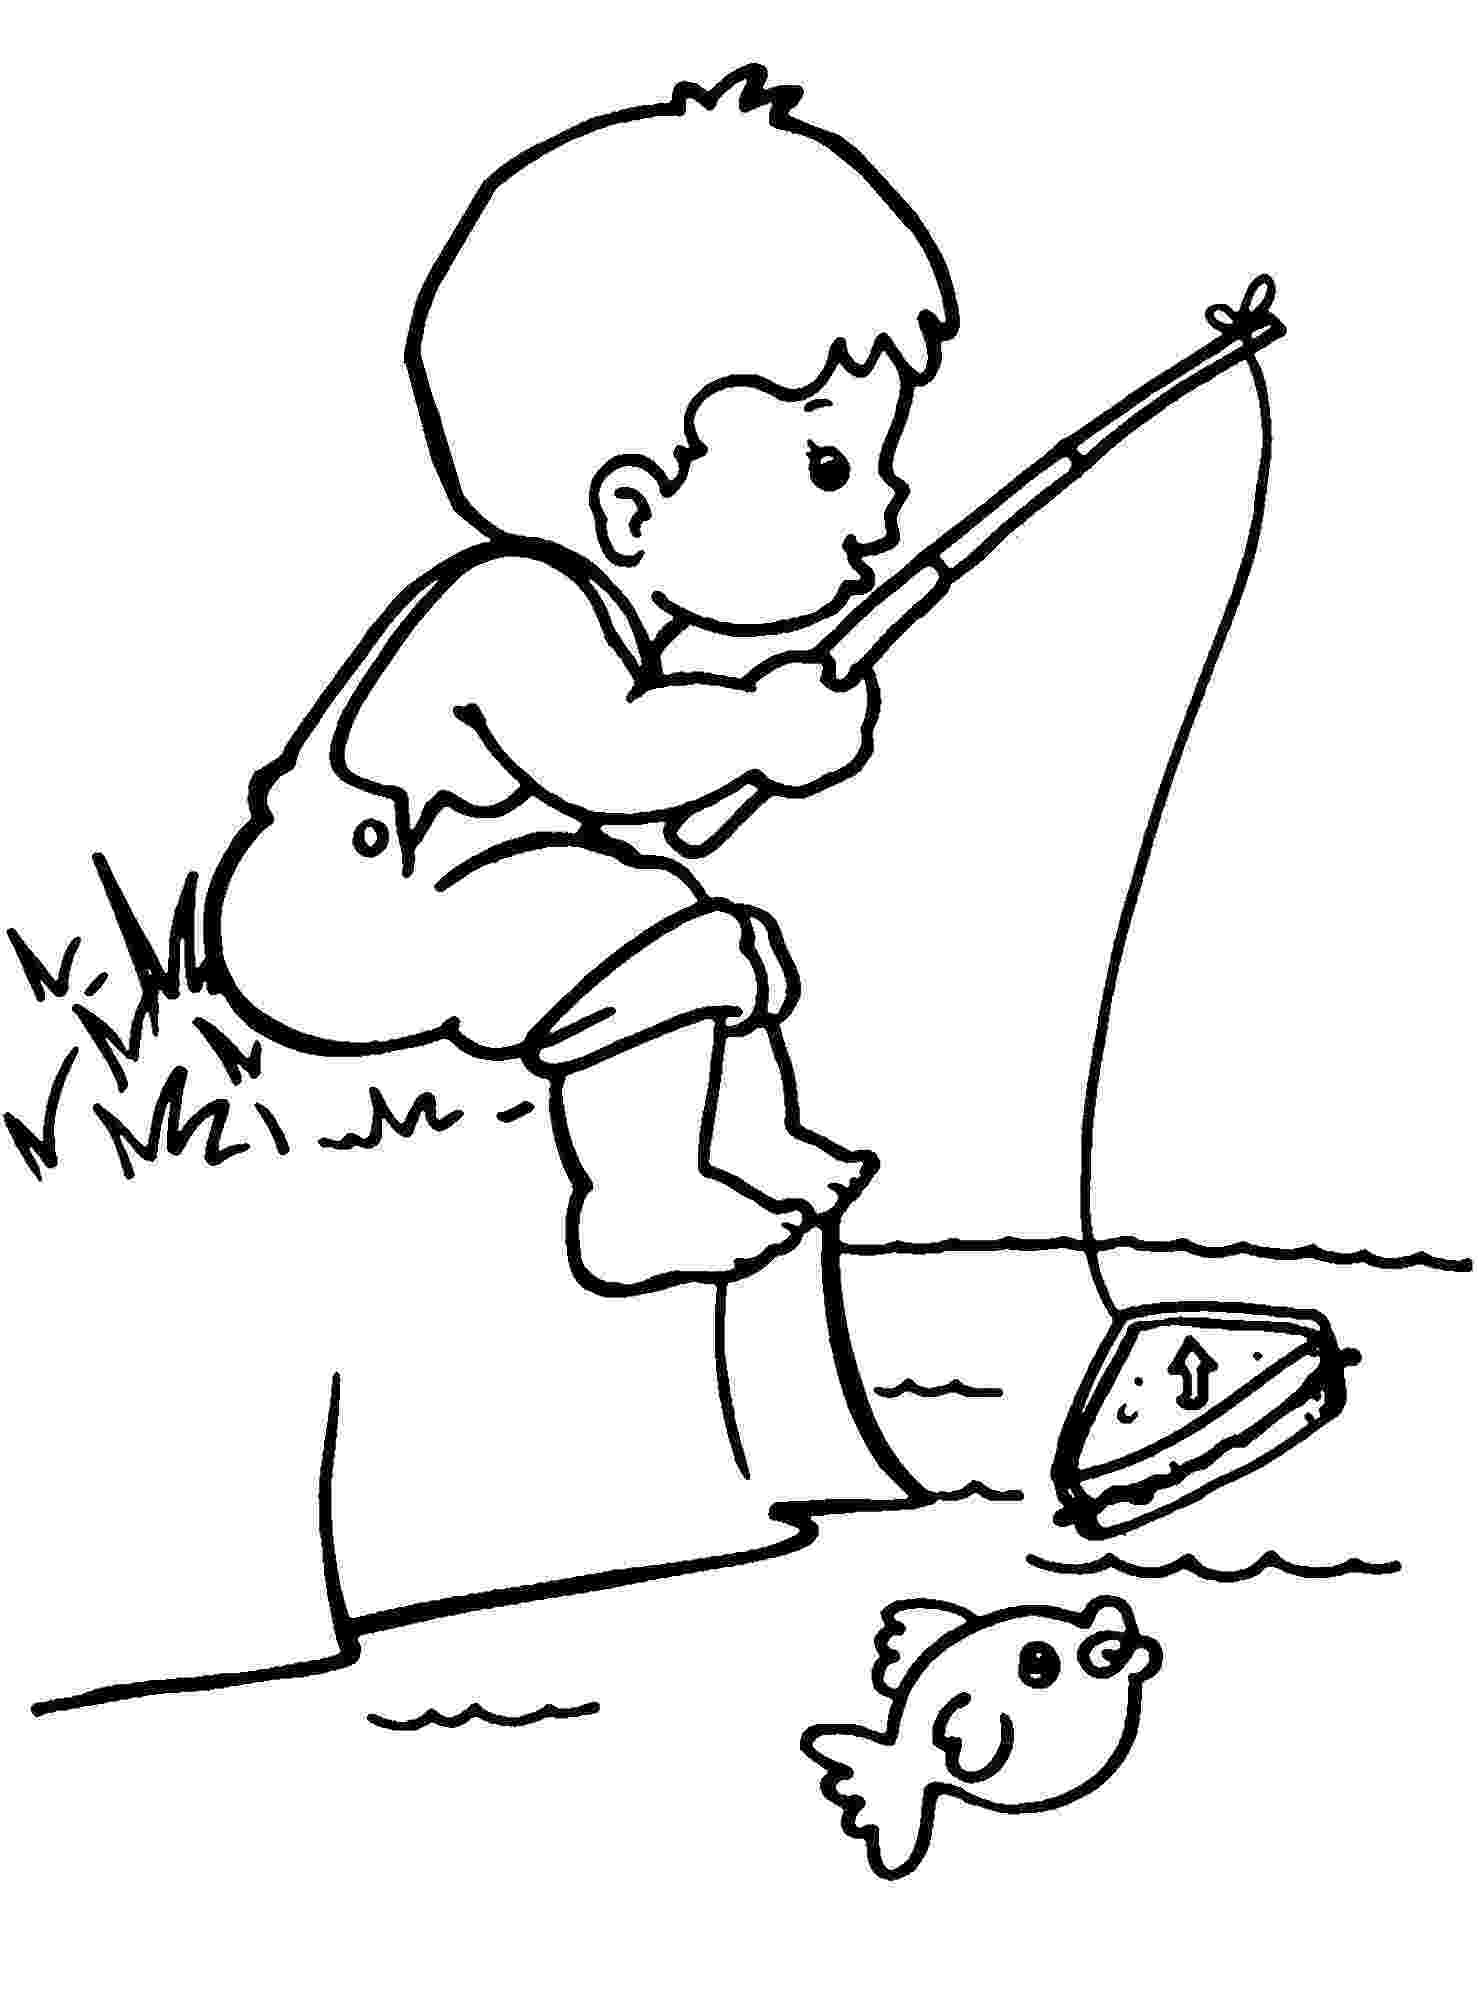 coloring page for boys free printable boy coloring pages for kids cool2bkids for boys coloring page